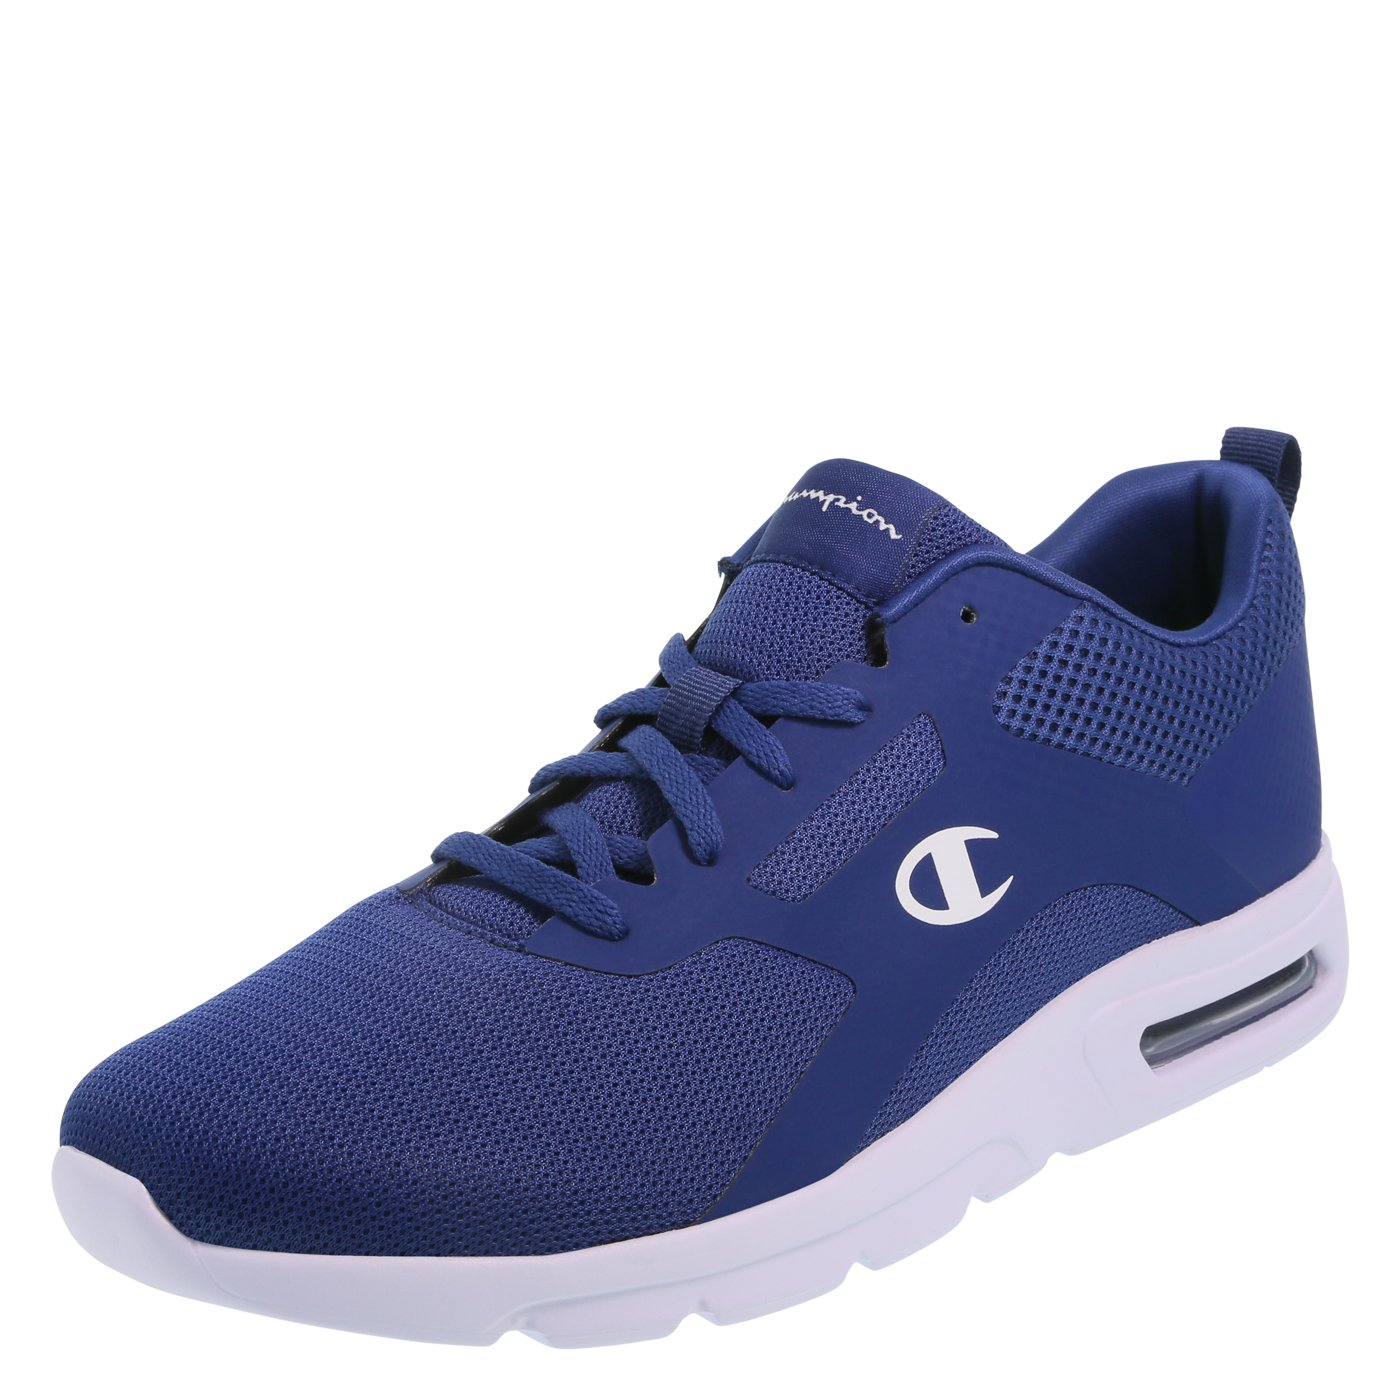 Champion Men's Concur X-Cell Runner B07DRRCPPY 10.5 D(M) US|Navy